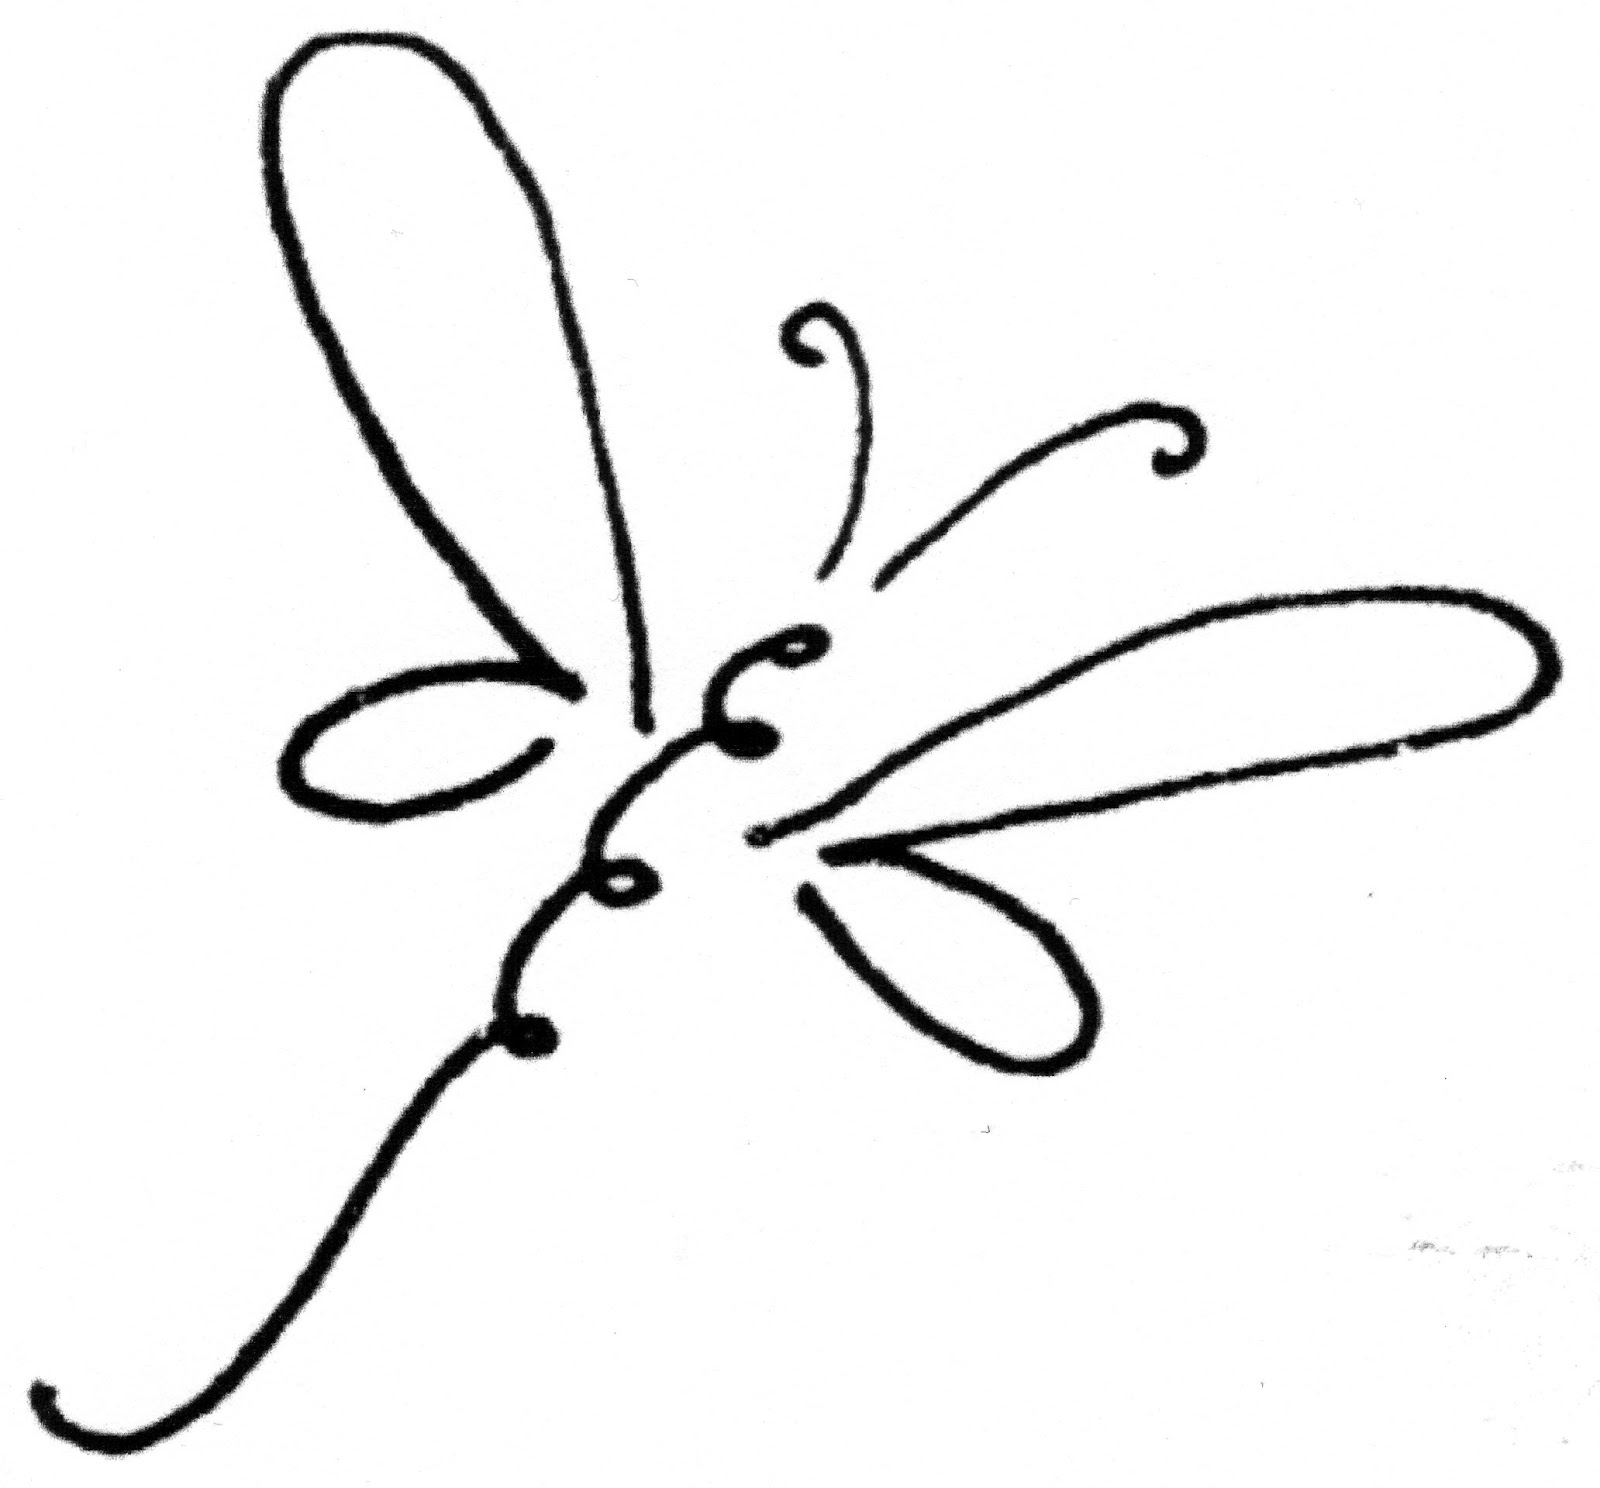 Clipart Grasshopper 2 likewise 93660867220693387 besides  likewise Simple Volcano Diagram additionally Raymarinee80. on dragonfly diagram